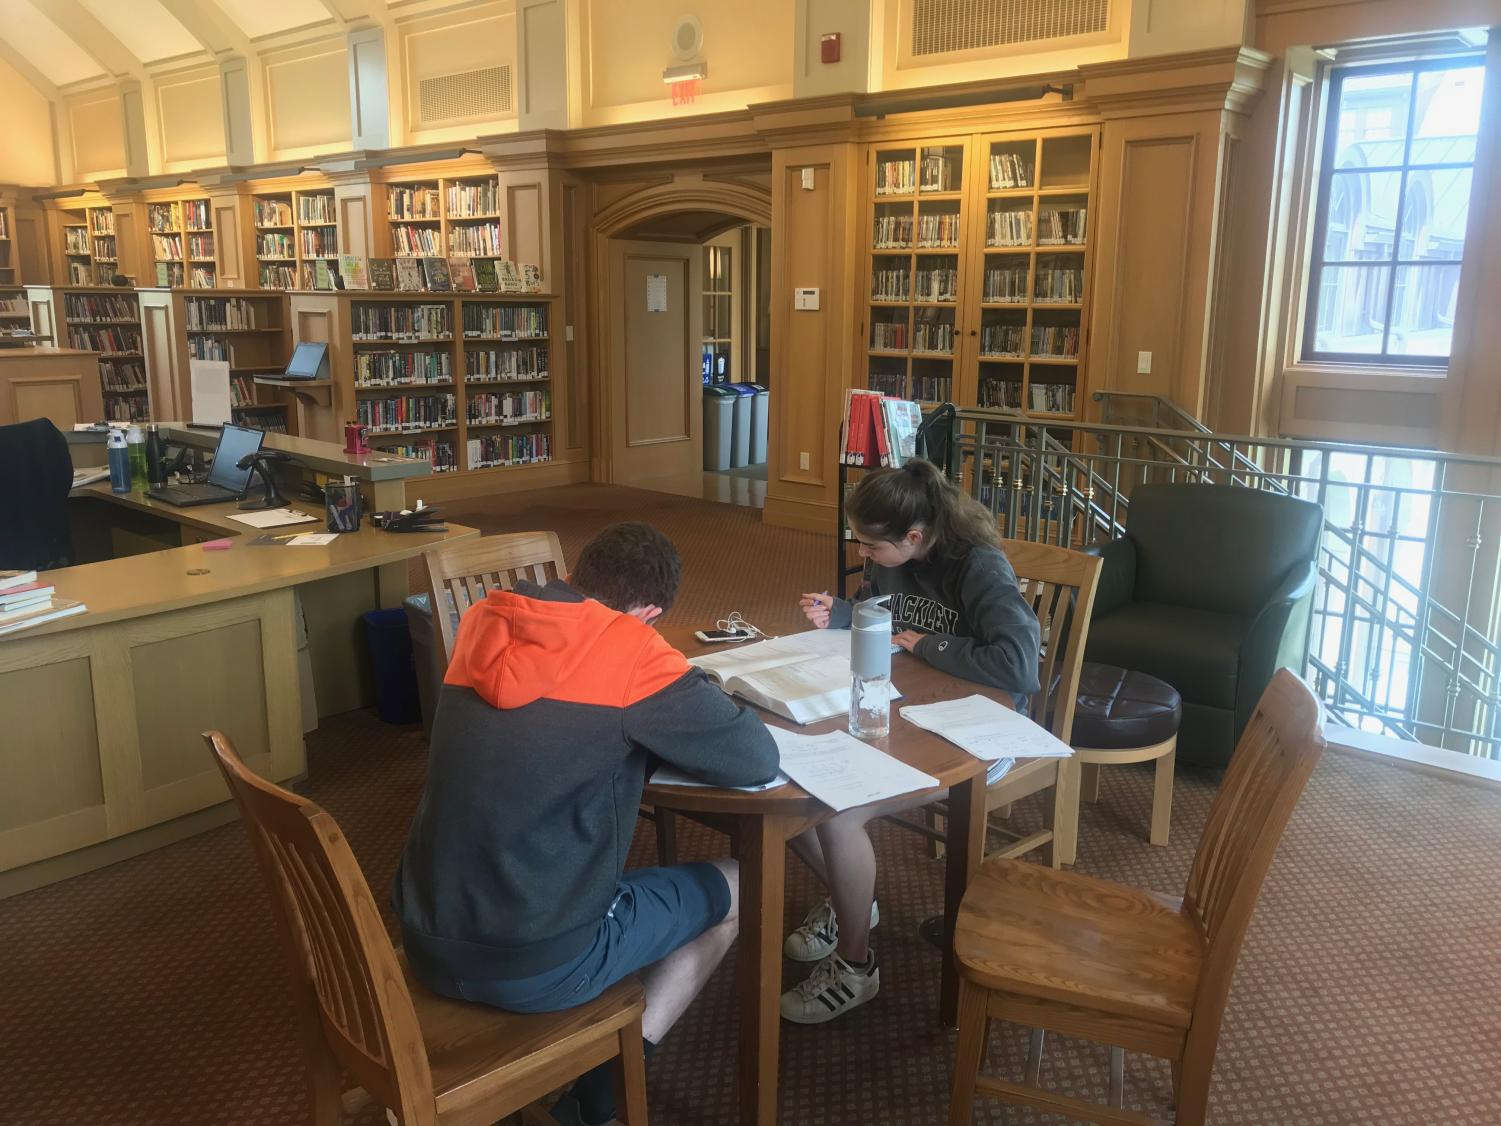 As the school year winds down, students study in the Goodhue Library. The end-of-year testing schedule prevents students from becoming overwhelmed with assessments and helps spread out their work productively. Some students still feel stressed about the amount of work they still have to complete before school ends, though.